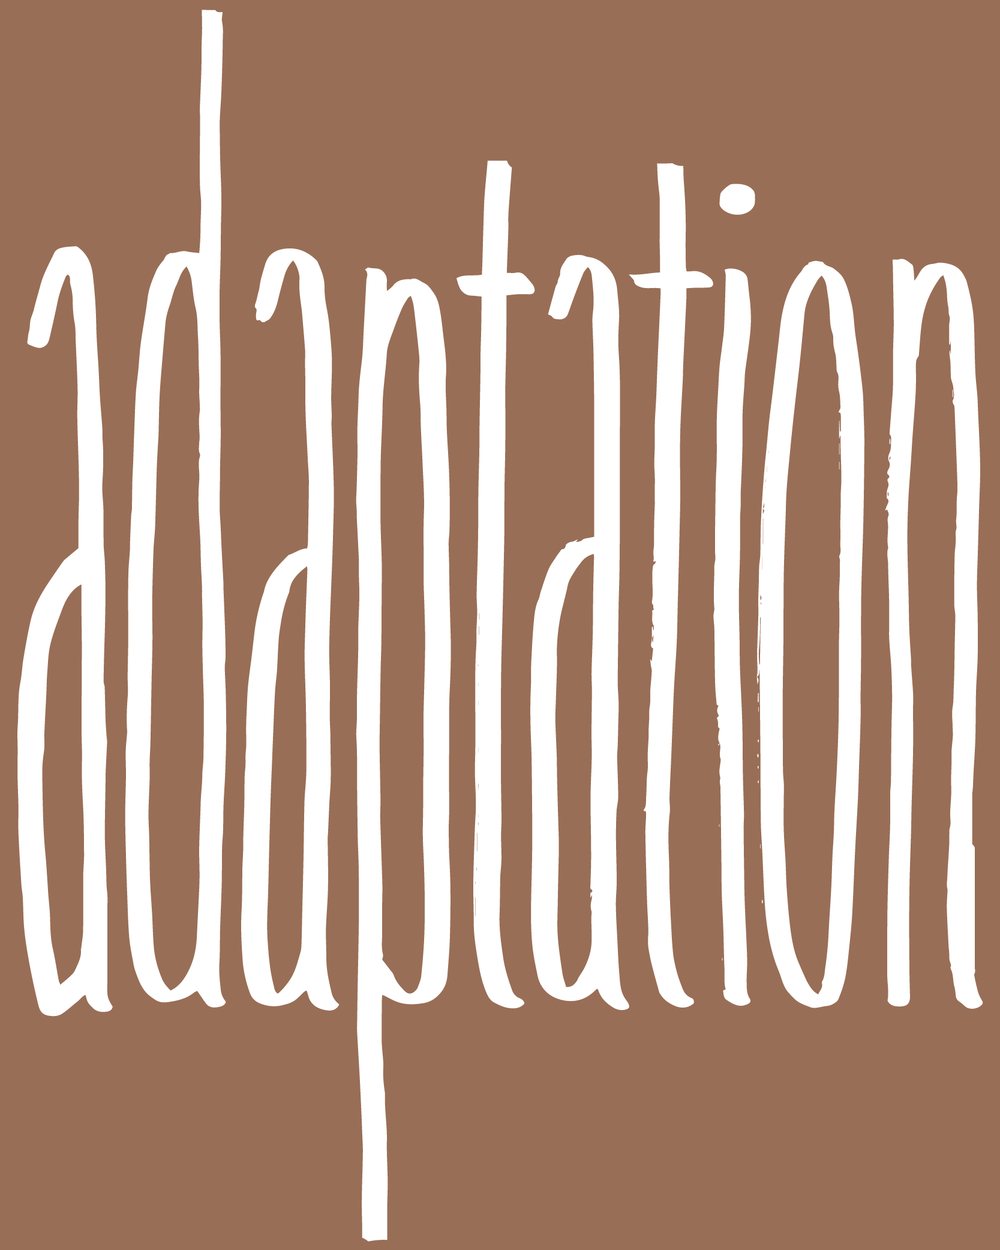 We are currently accepting submissions for our Spring 2019 issue on the theme of adaptation. The deadline for submissions is February 24th. Click here for more details. -